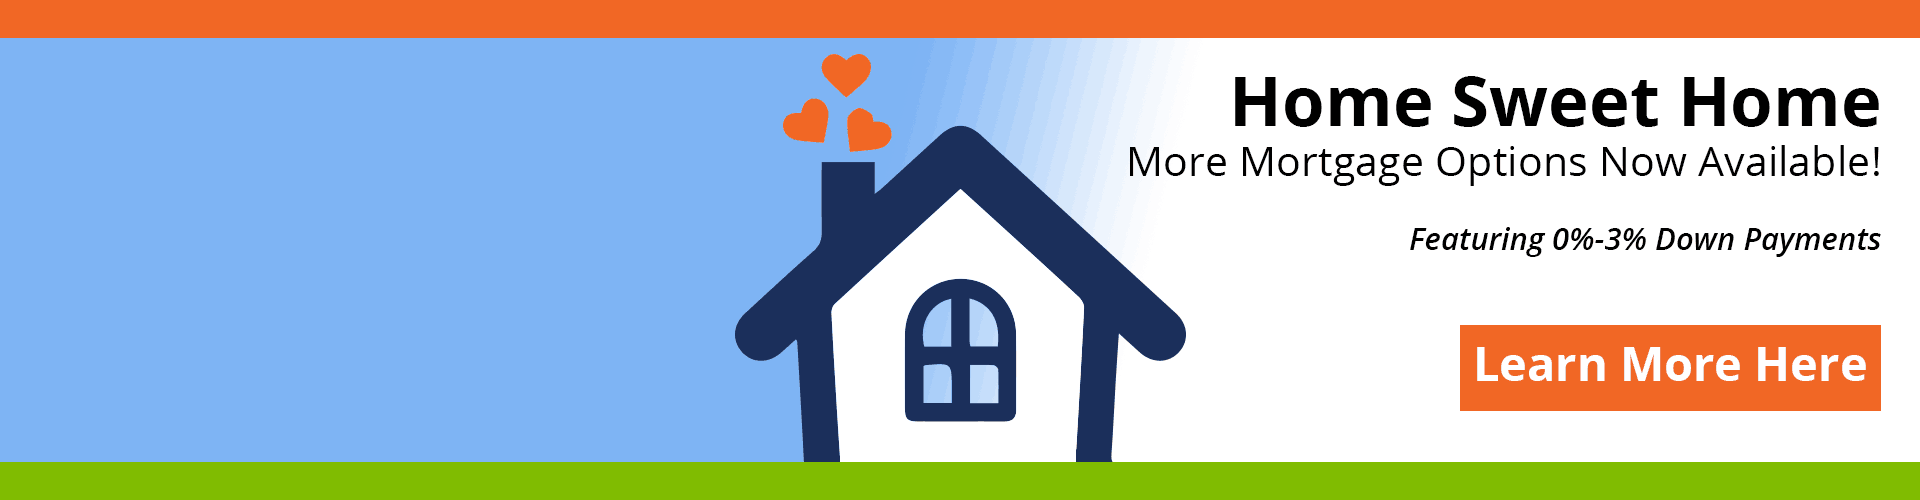 Home Sweet Home - Mortgage Banner